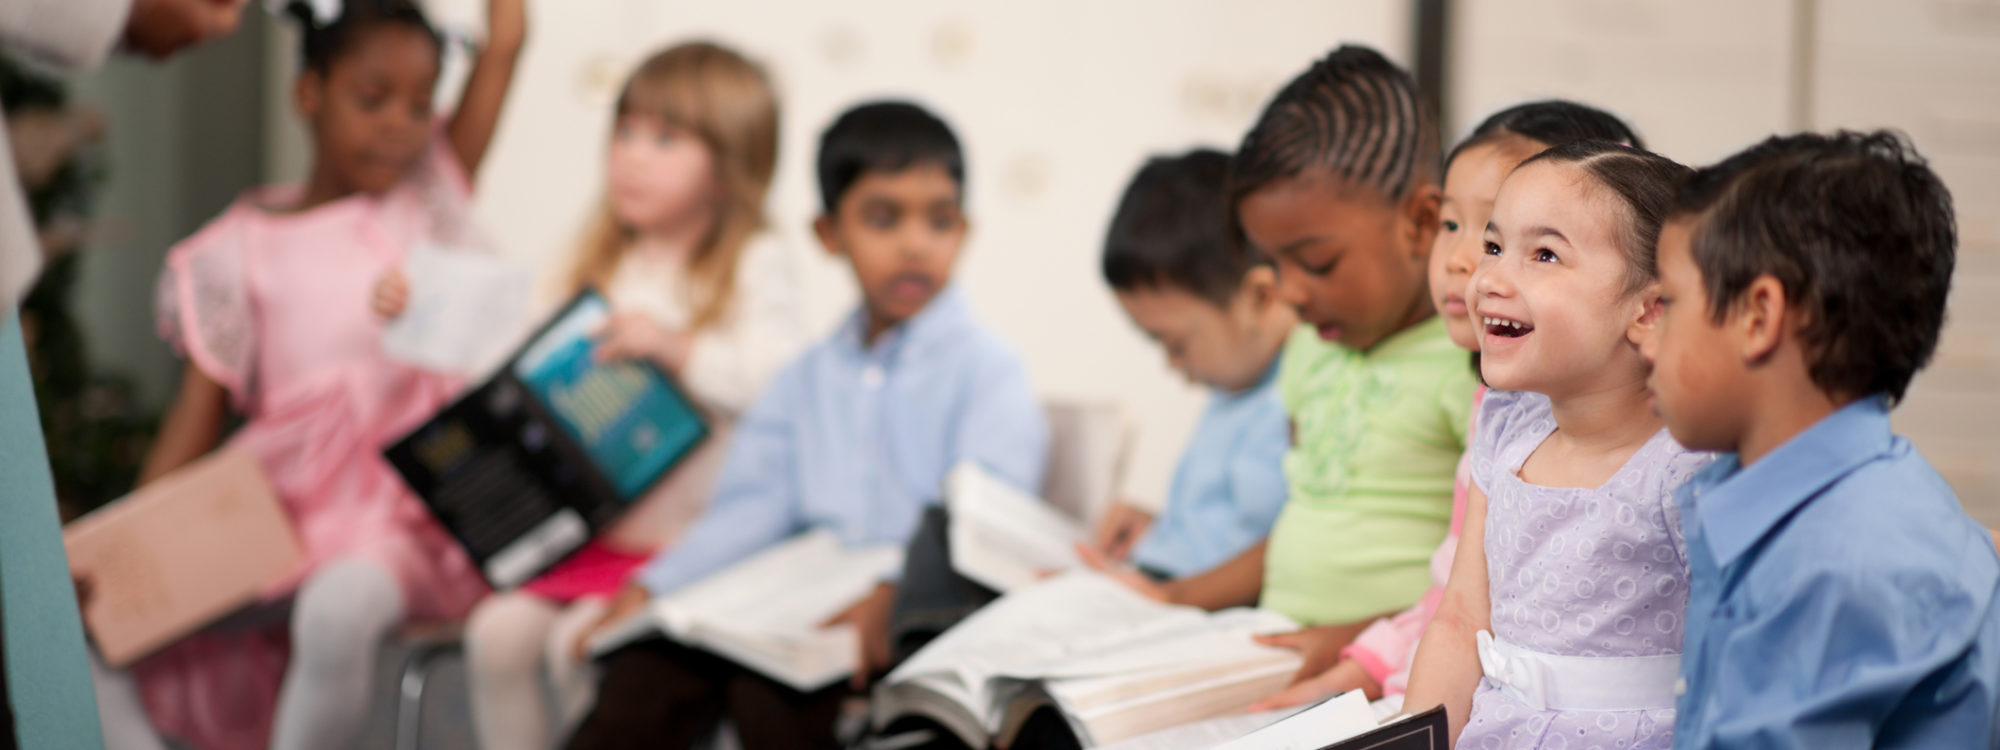 primary ages children read bible together